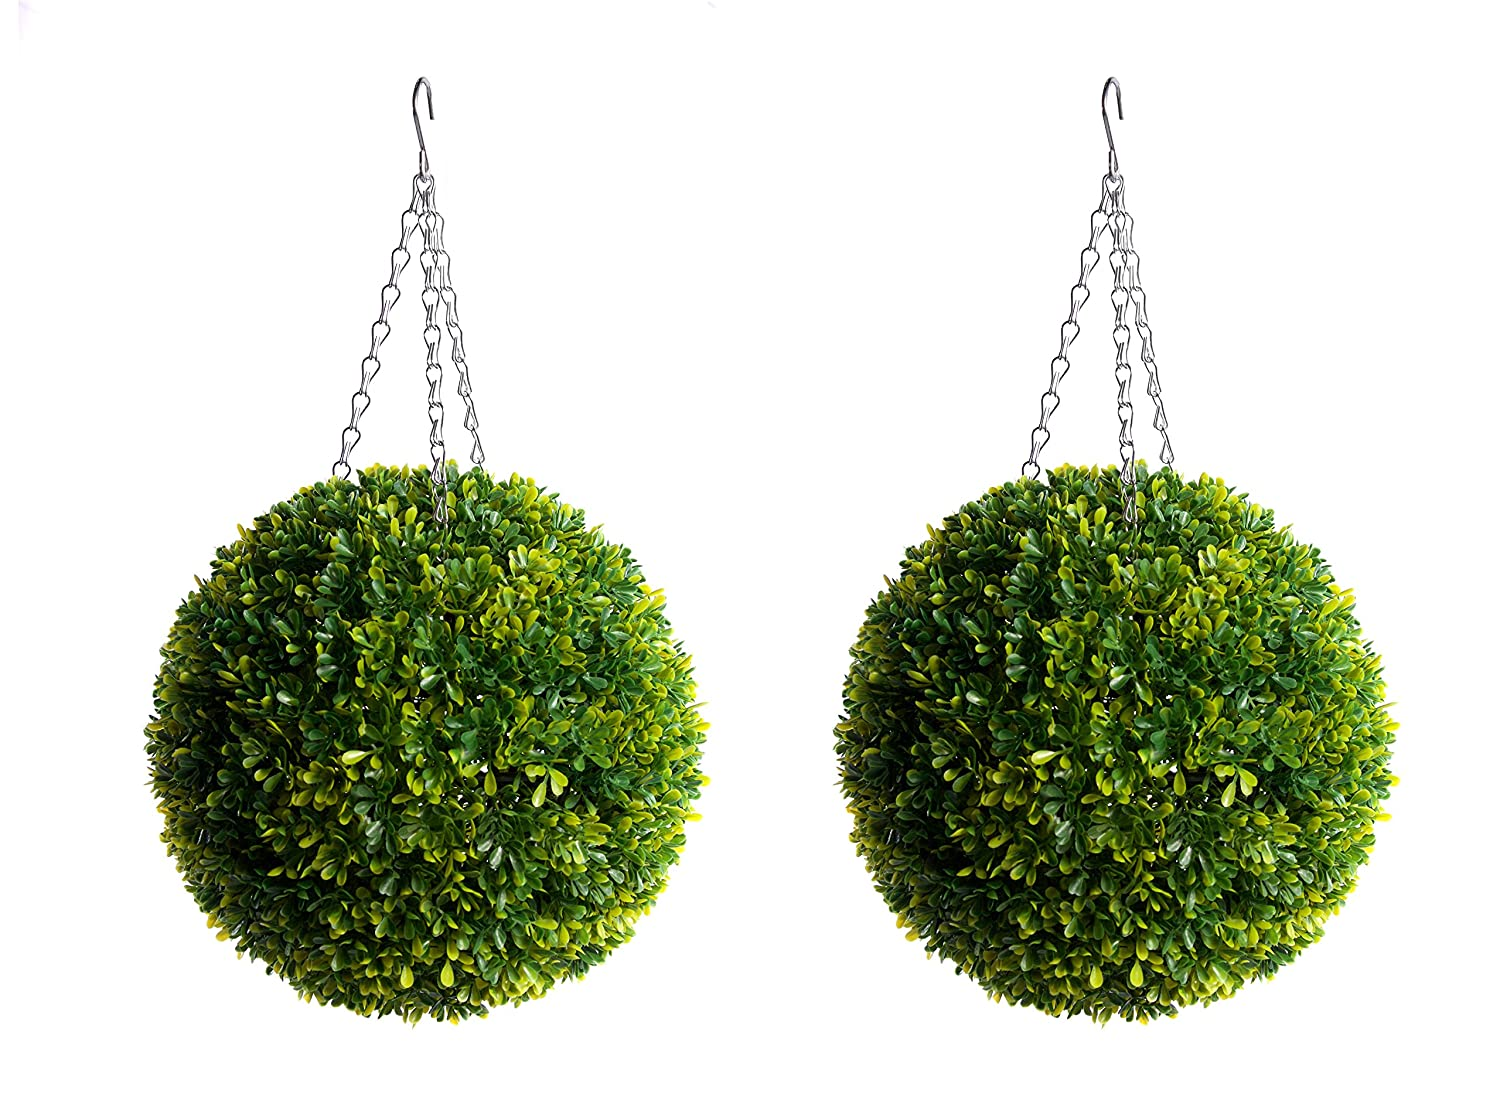 Best Artificial 2 30cm Long Leaf Boxwood Buxus Topiary Lush Green Grass Balls